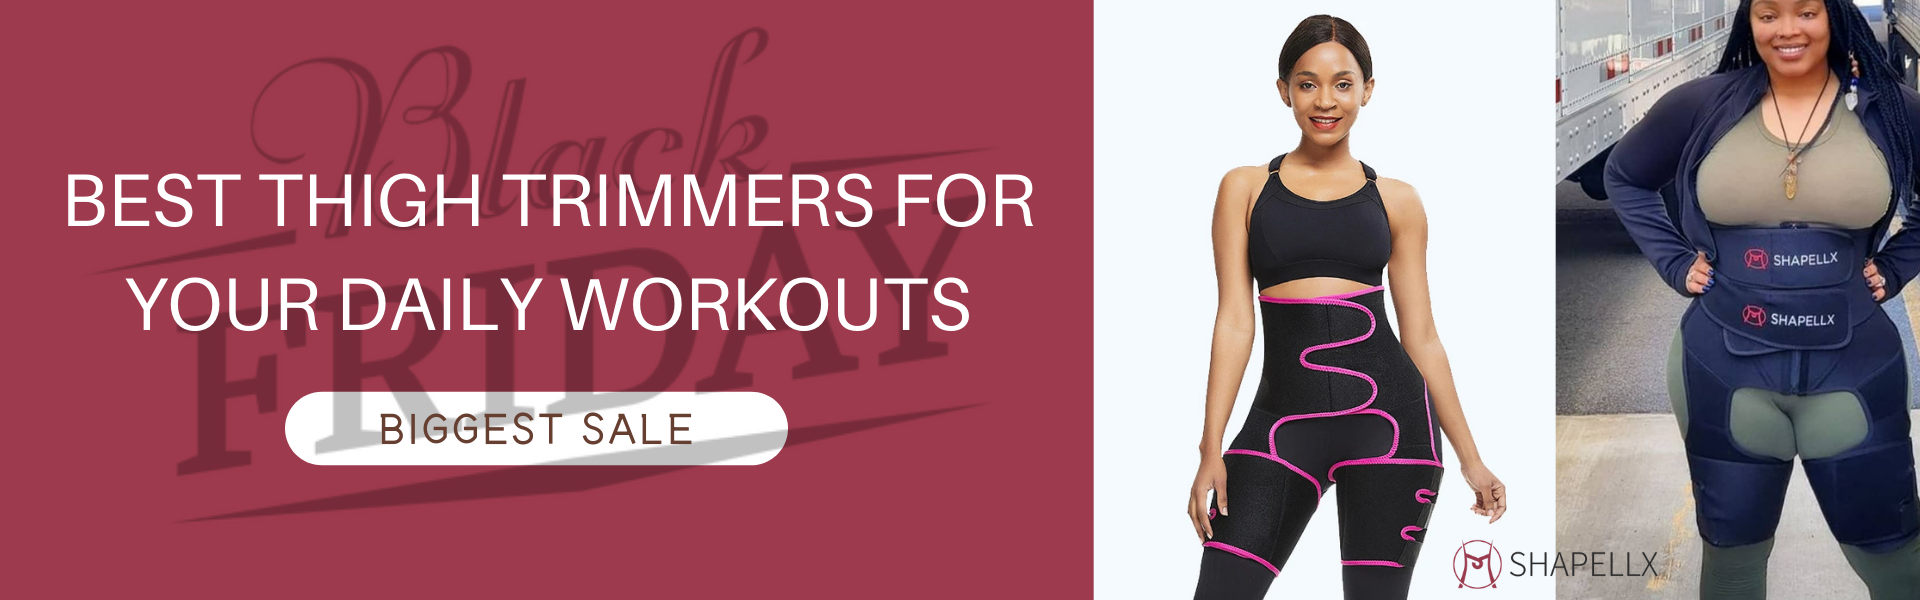 The Best Thigh Trimmers For Your Daily Workouts